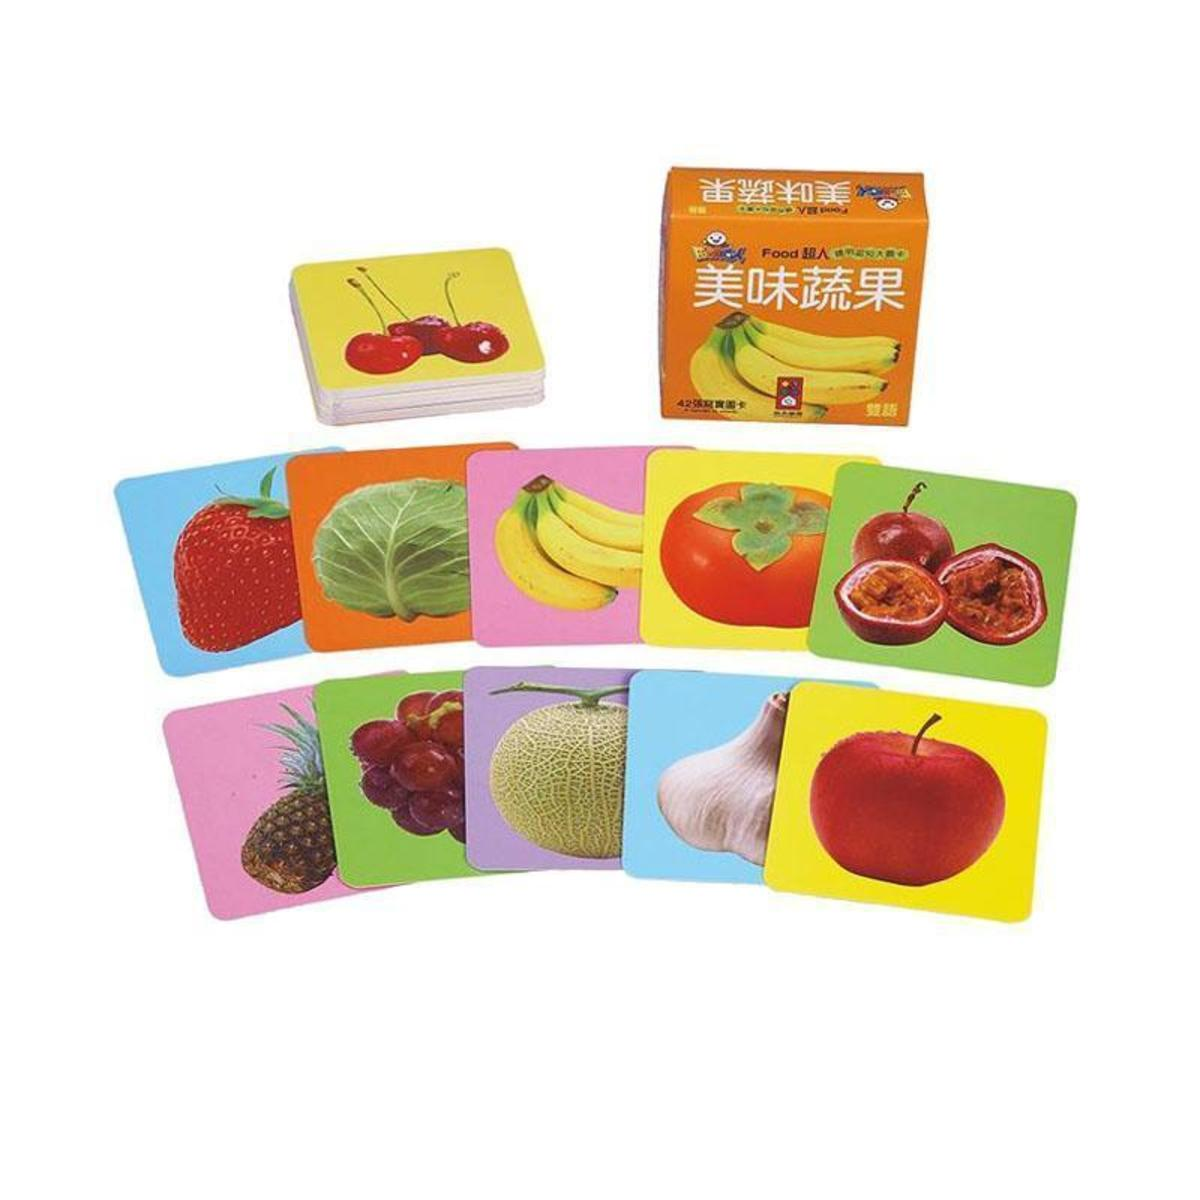 Publishing Delicious Fruits and Vegetables-FOOD Superman Smart Cognitive Big Picture Card Taiwan Import